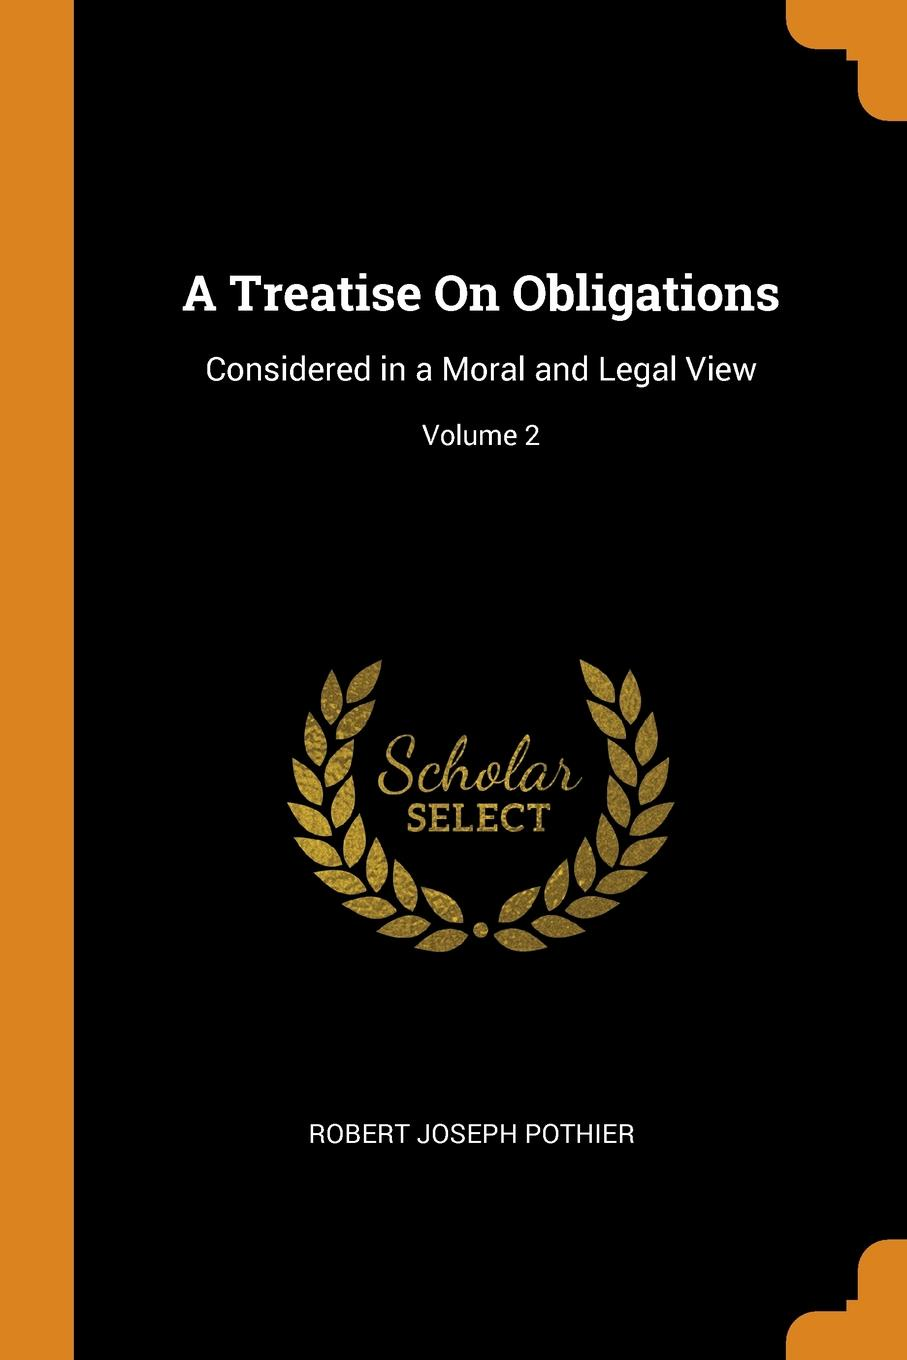 A Treatise On Obligations. Considered in a Moral and Legal View; Volume 2. Robert Joseph Pothier